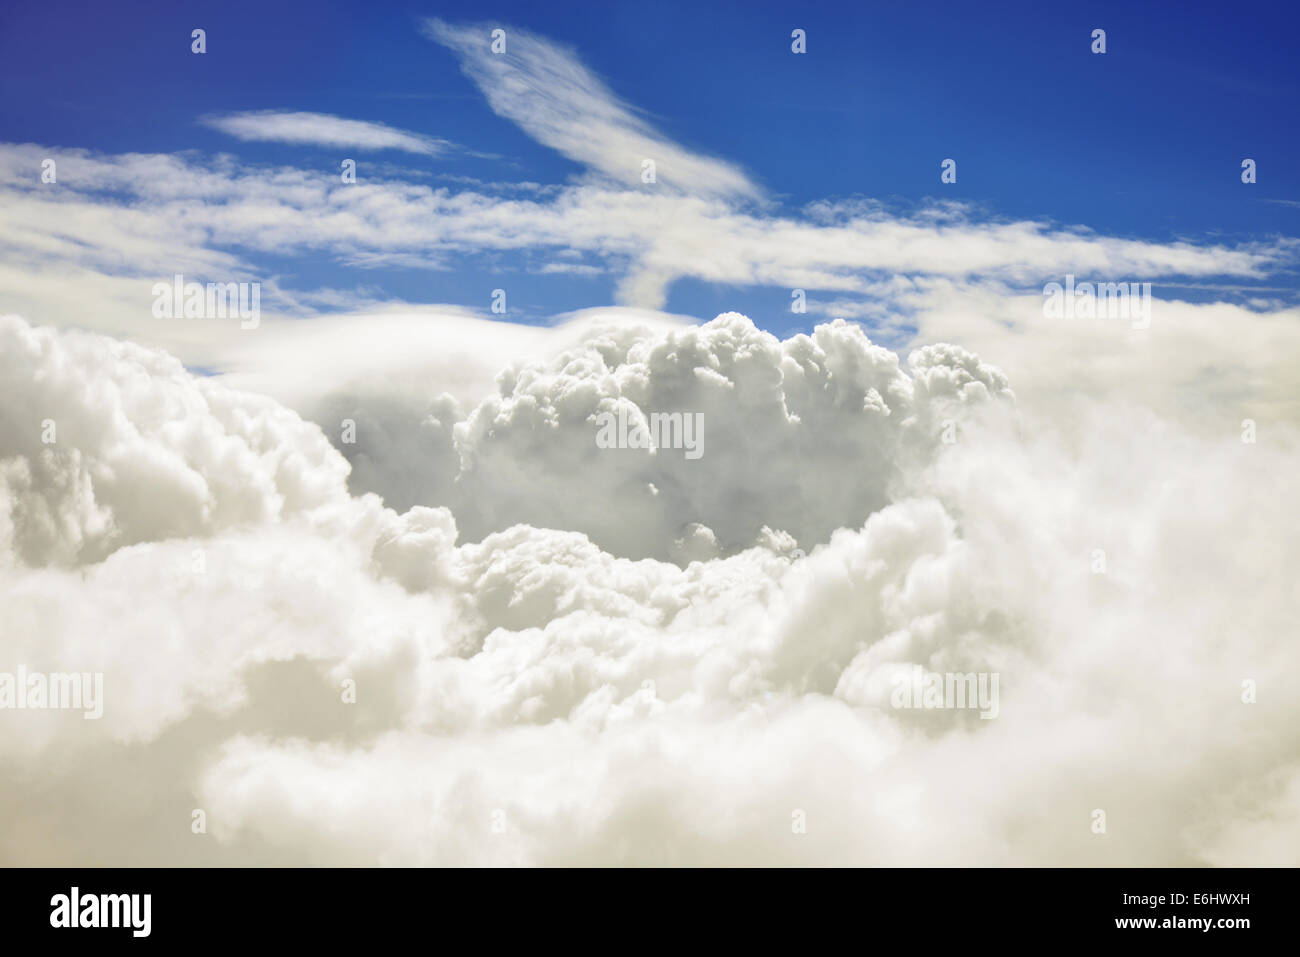 Aerial view of puffy white cumulonimbus clouds and sky. Stock Photo